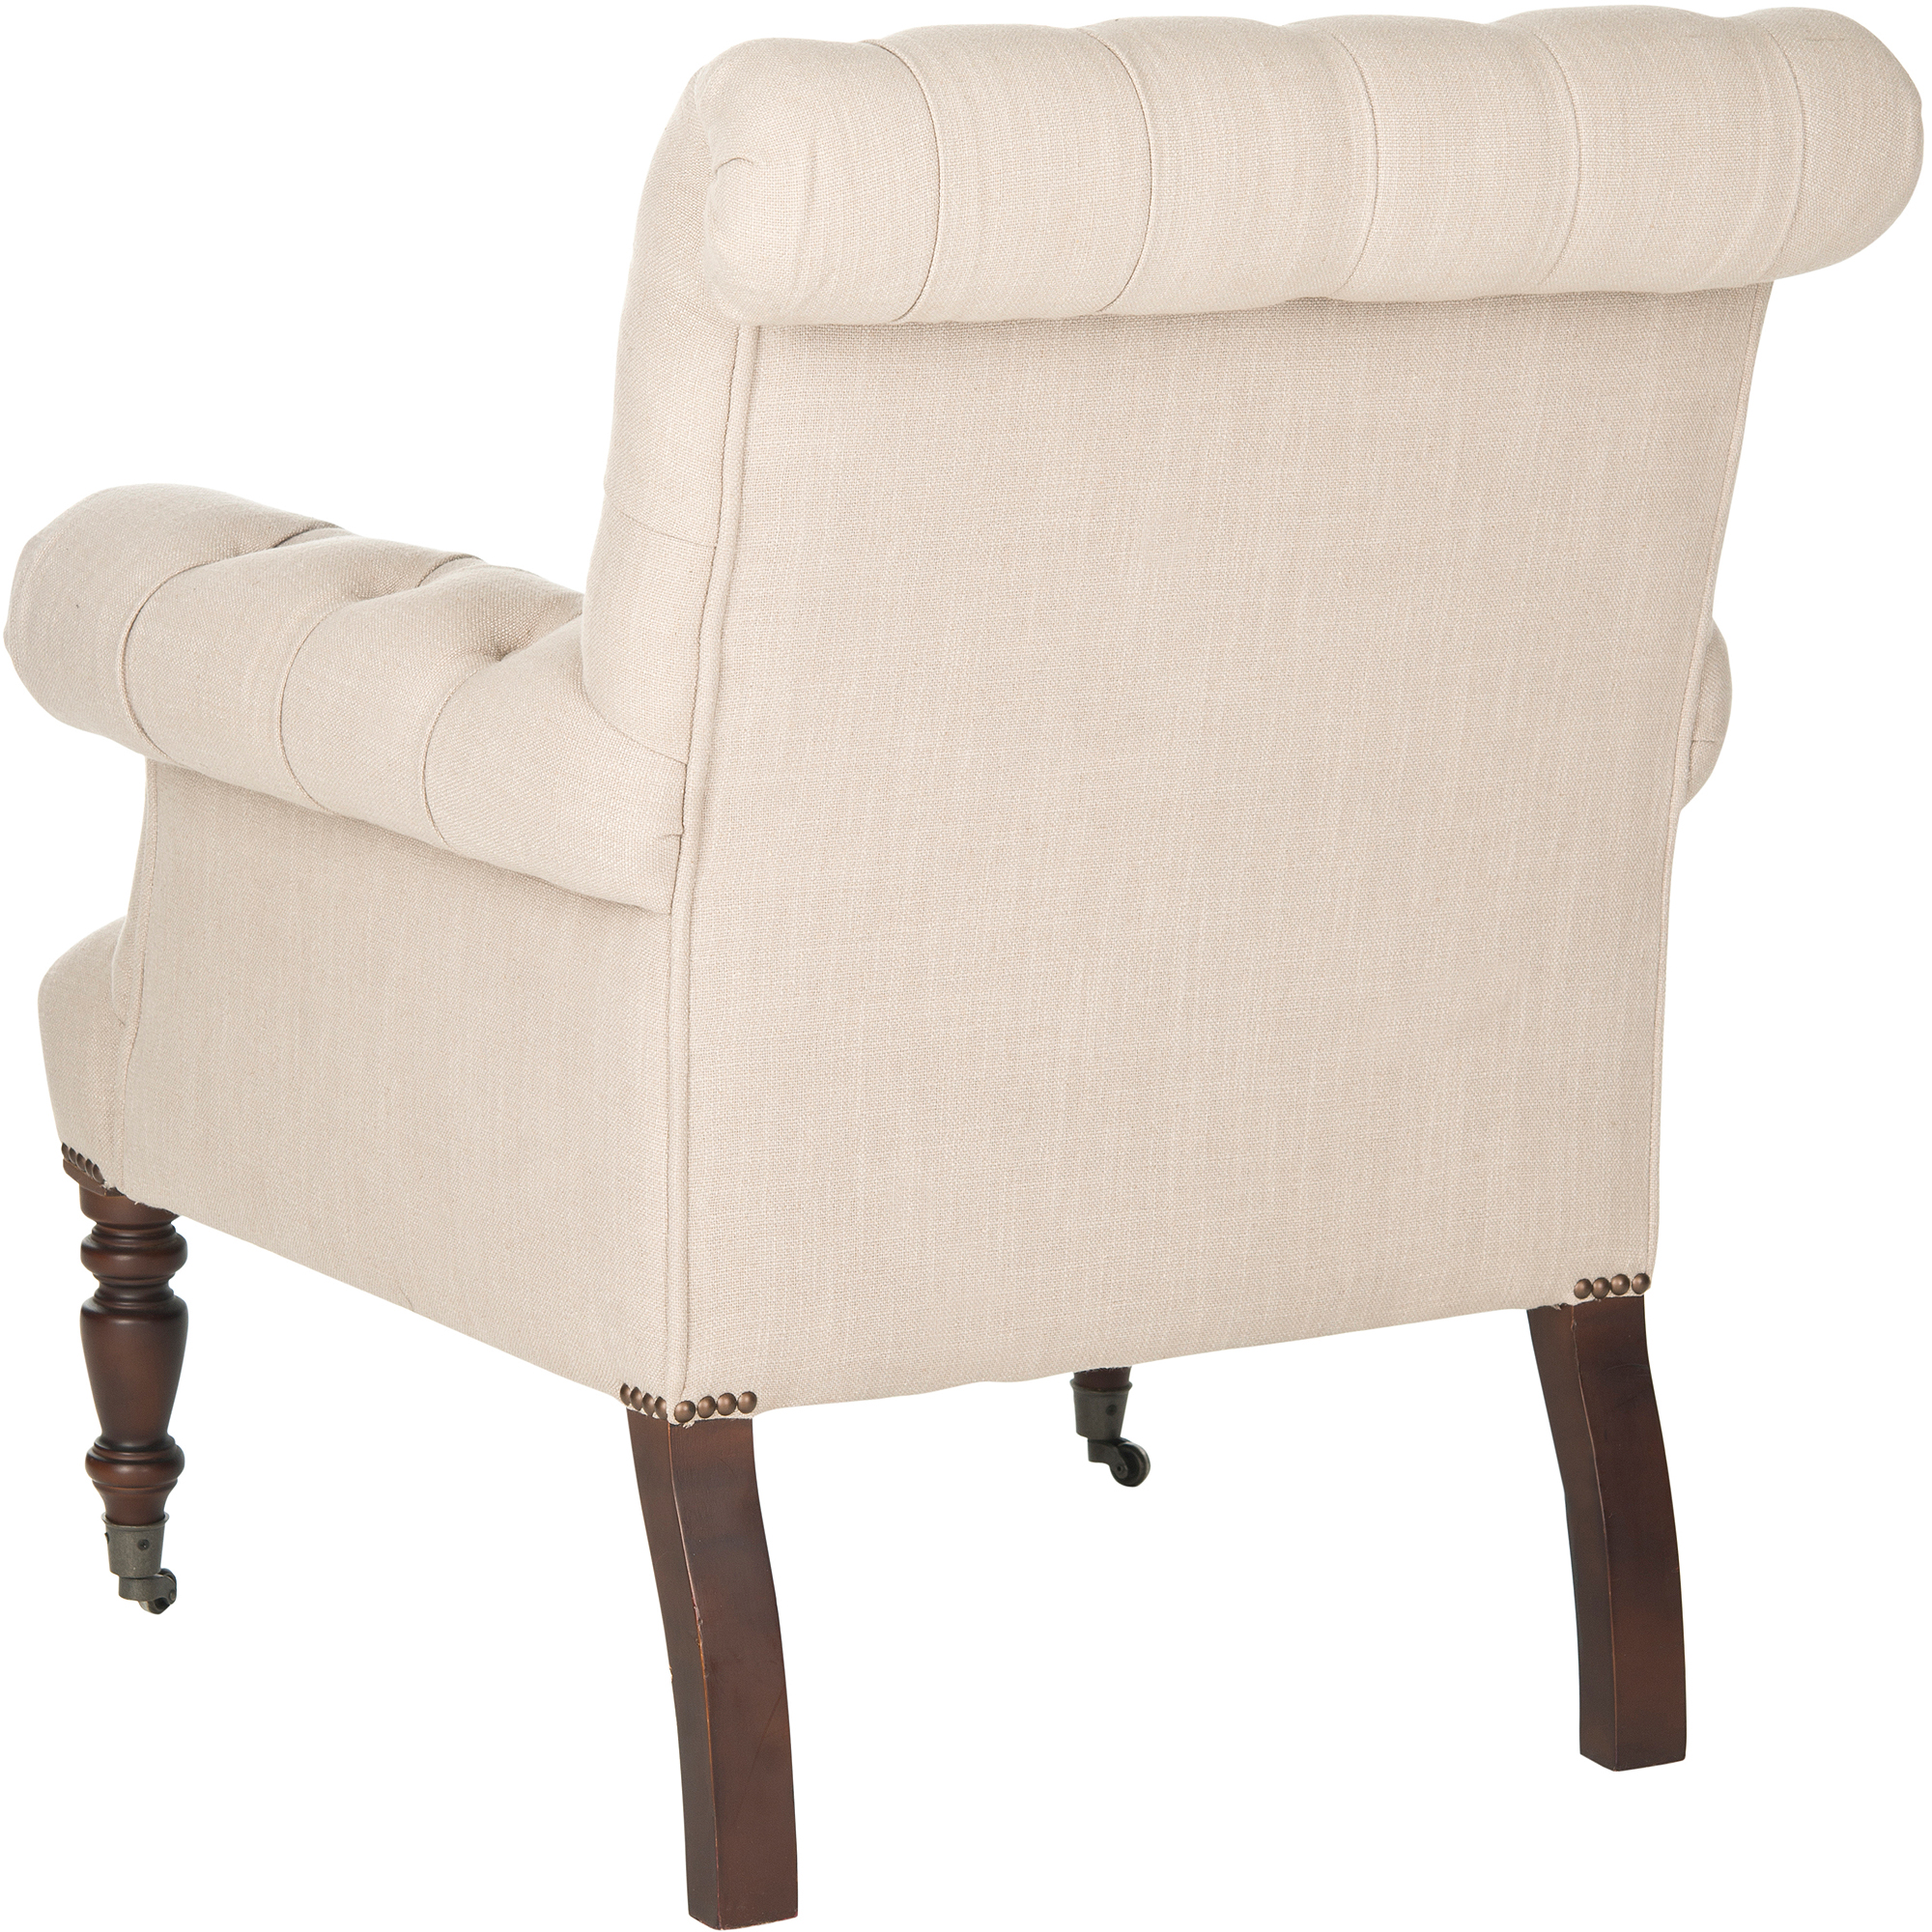 Safavieh Bennet Club Chair, True Taupe with Brass Nail Heads by Safavieh